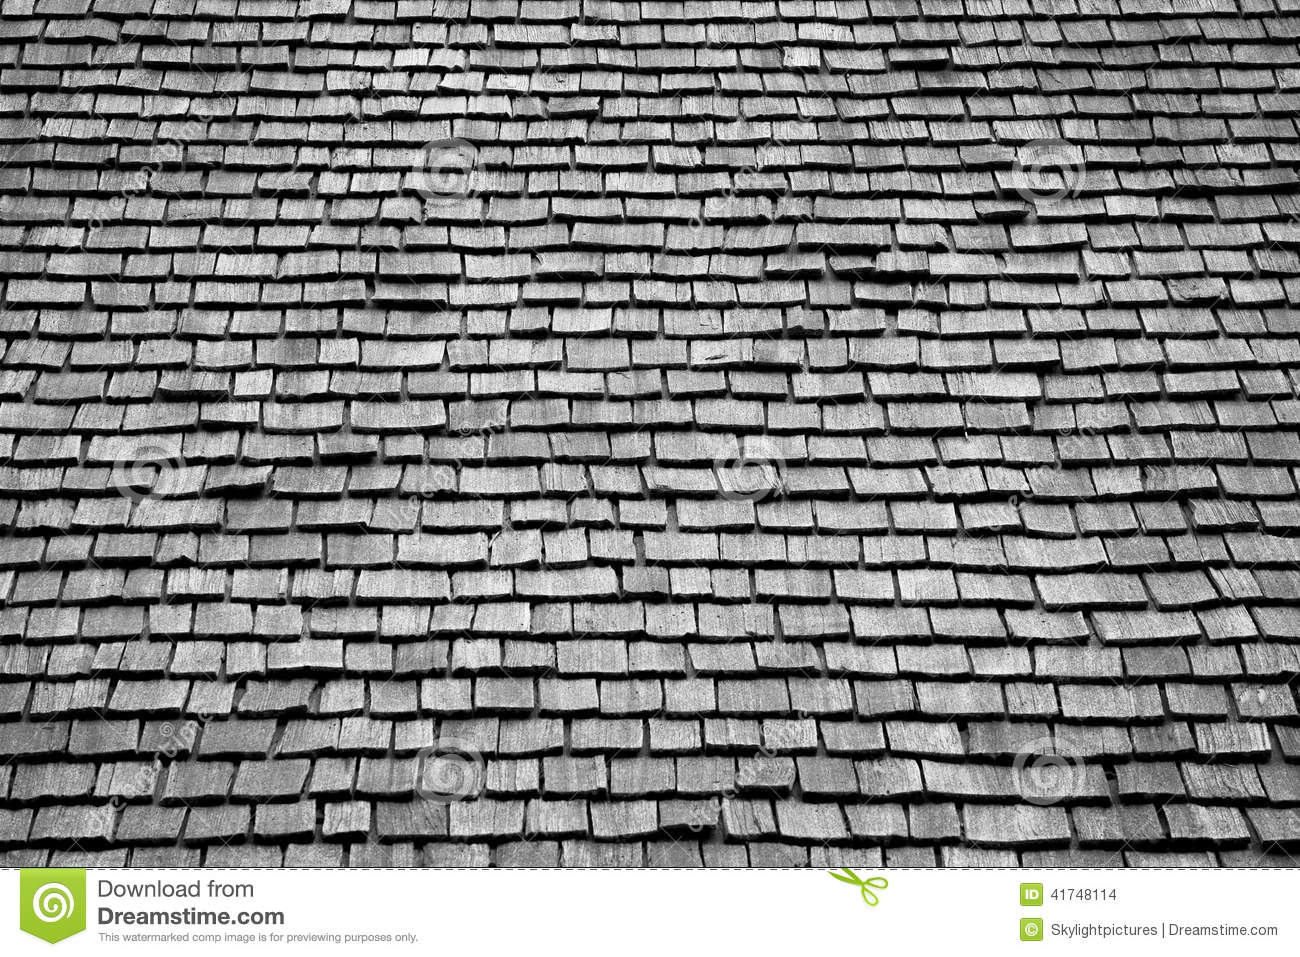 Pictures of roof shingles - Roof Shingles